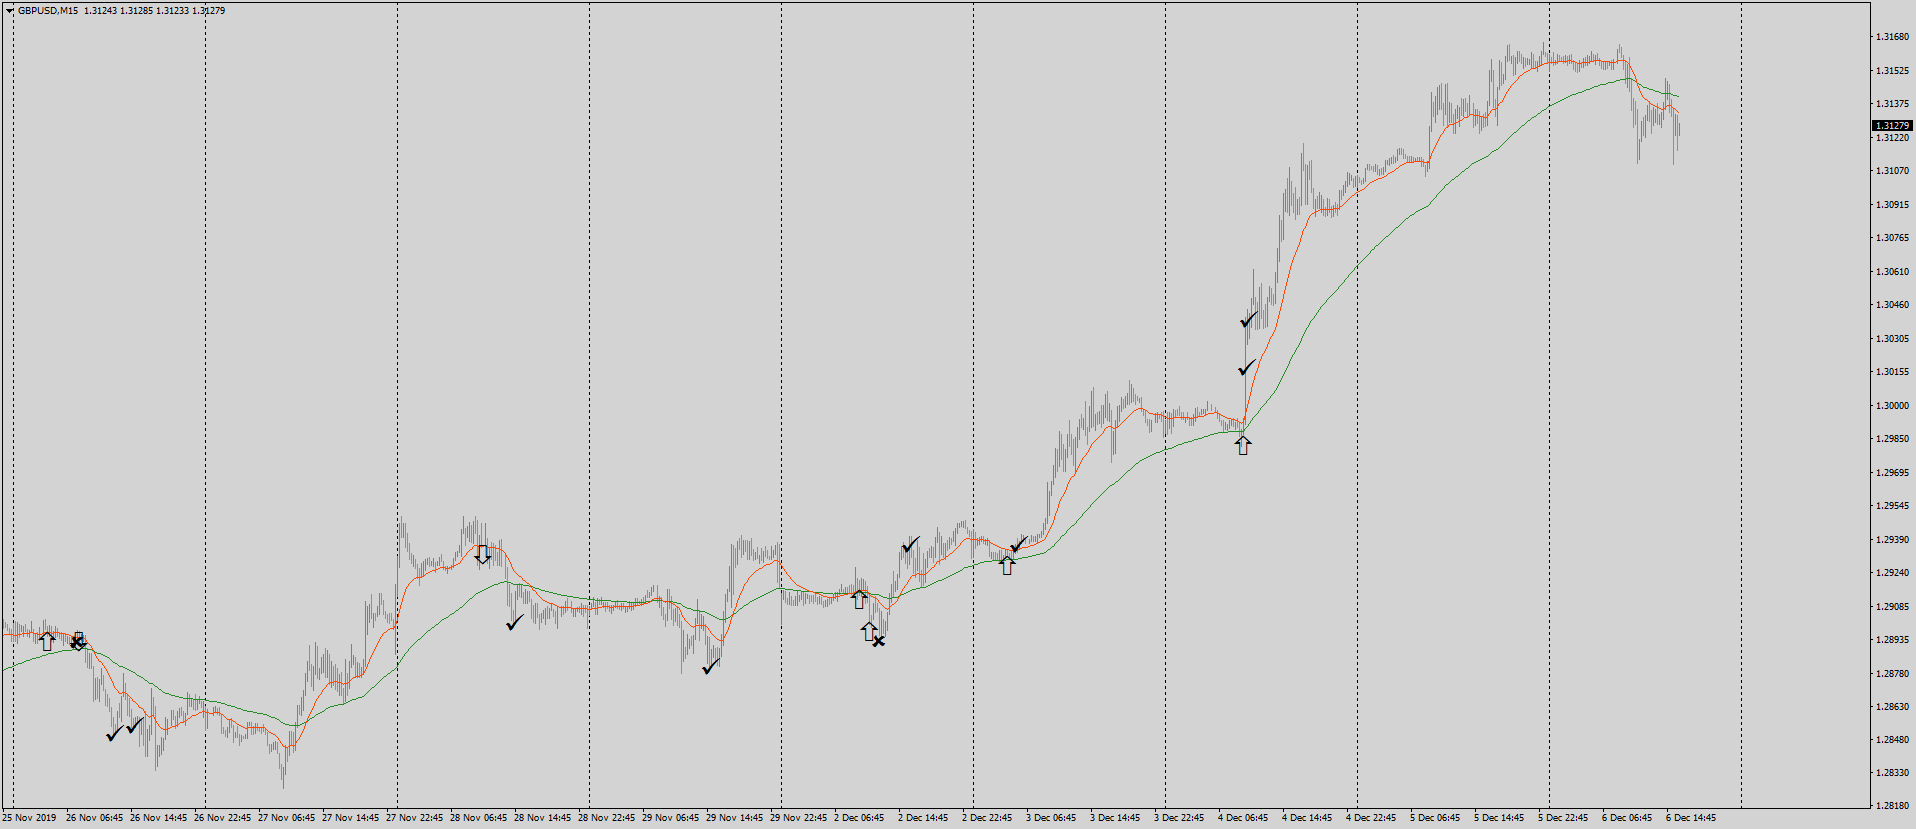 19-12-06-gbpusd-m15-tradexfin-limited.png